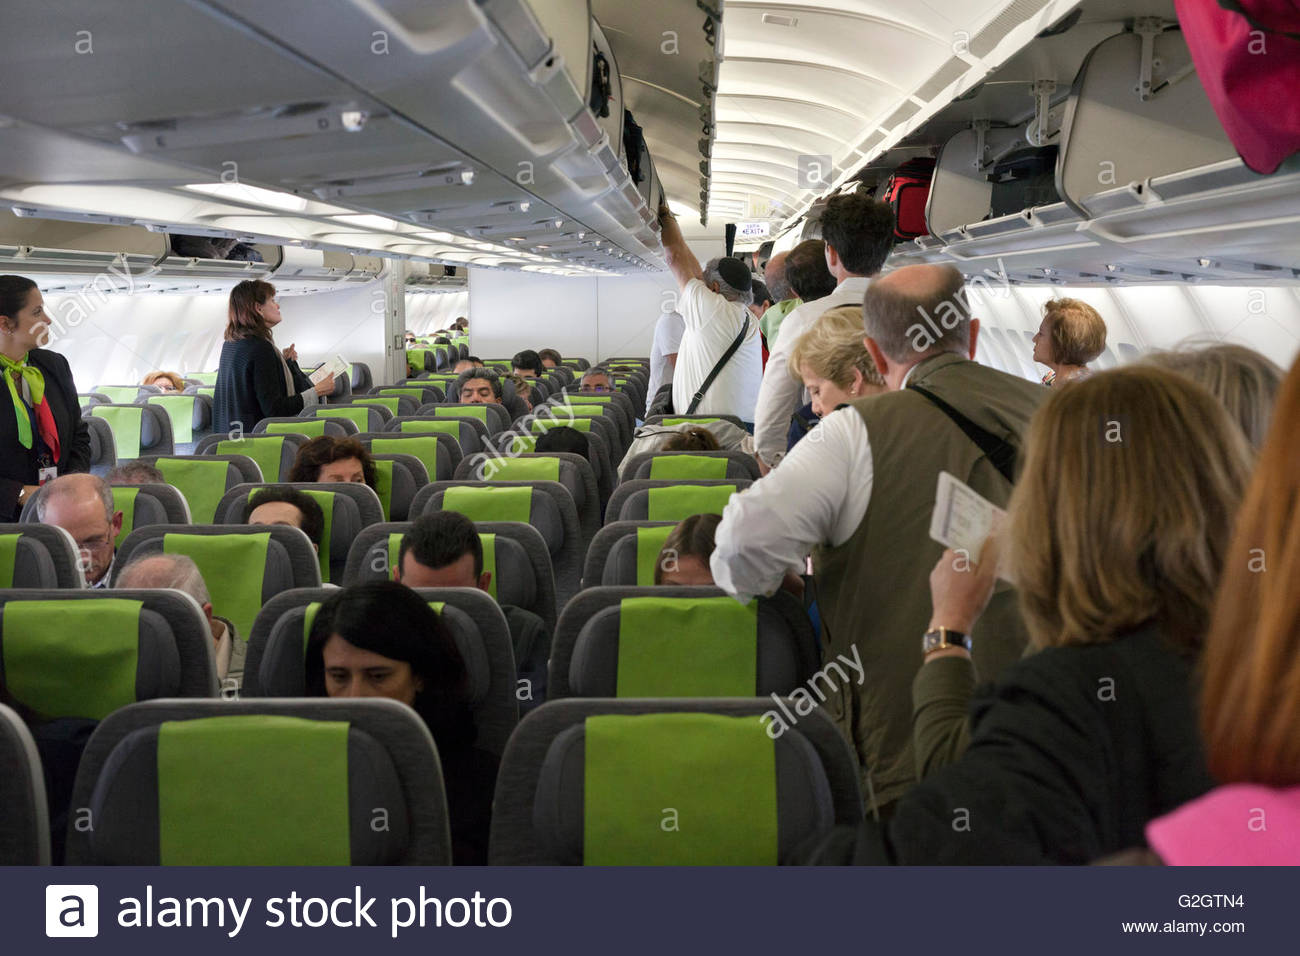 Passengers During Boarding Of The Airplane